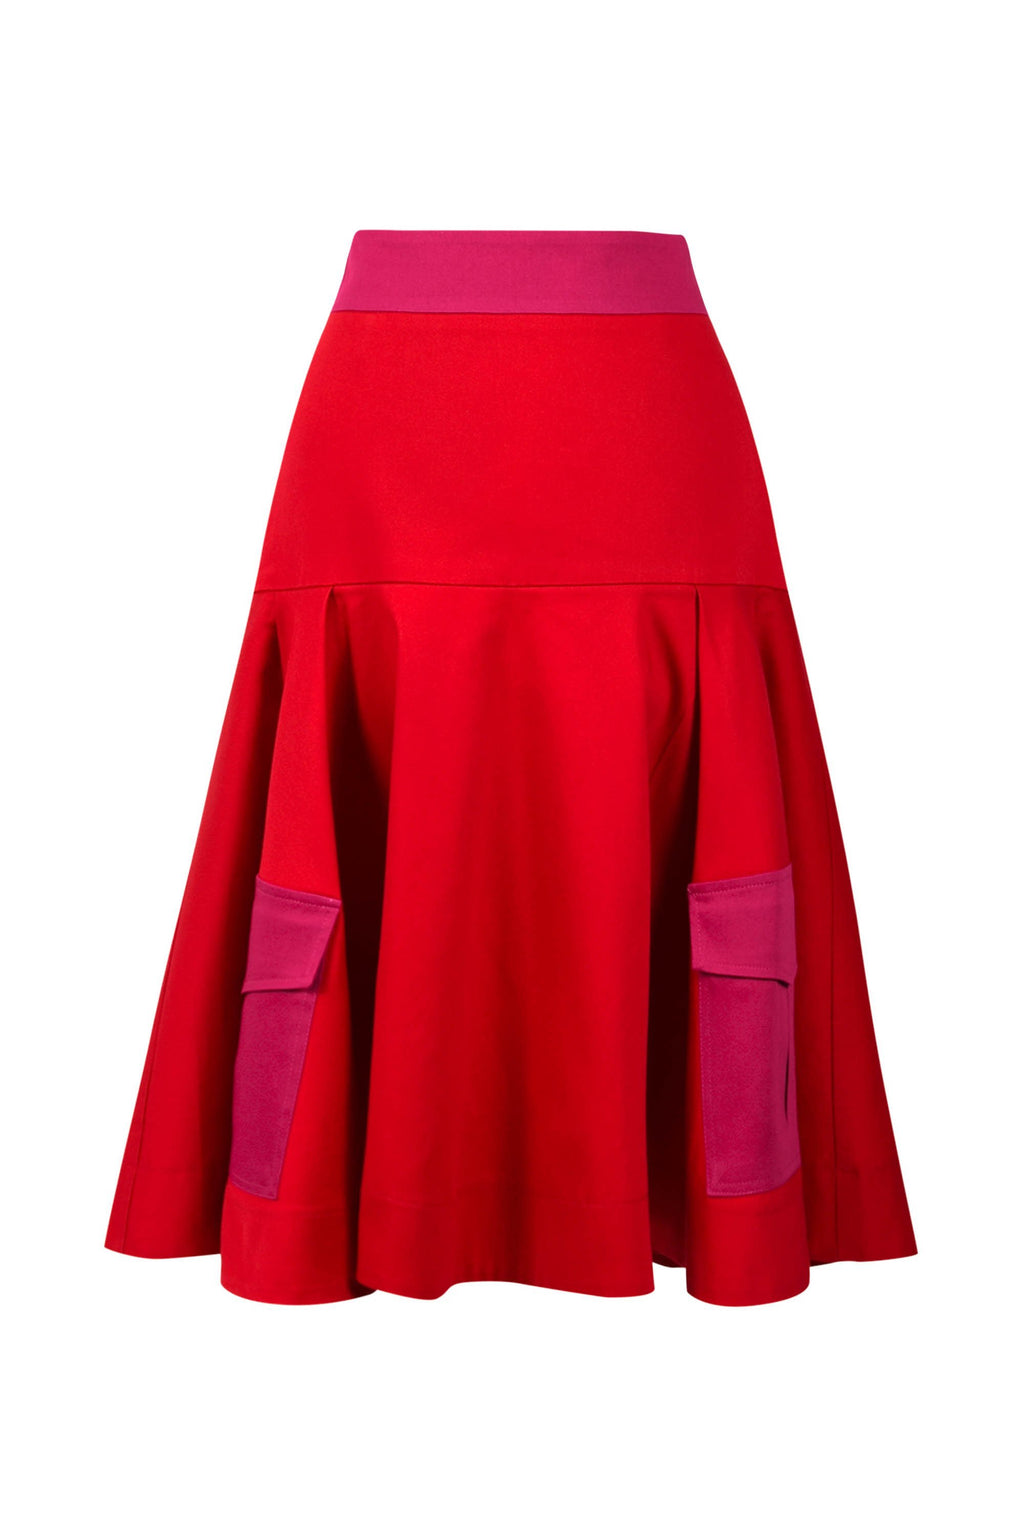 Business Meets Pleasure A-Line Midi Skirt - Red - Tia Dorraine London